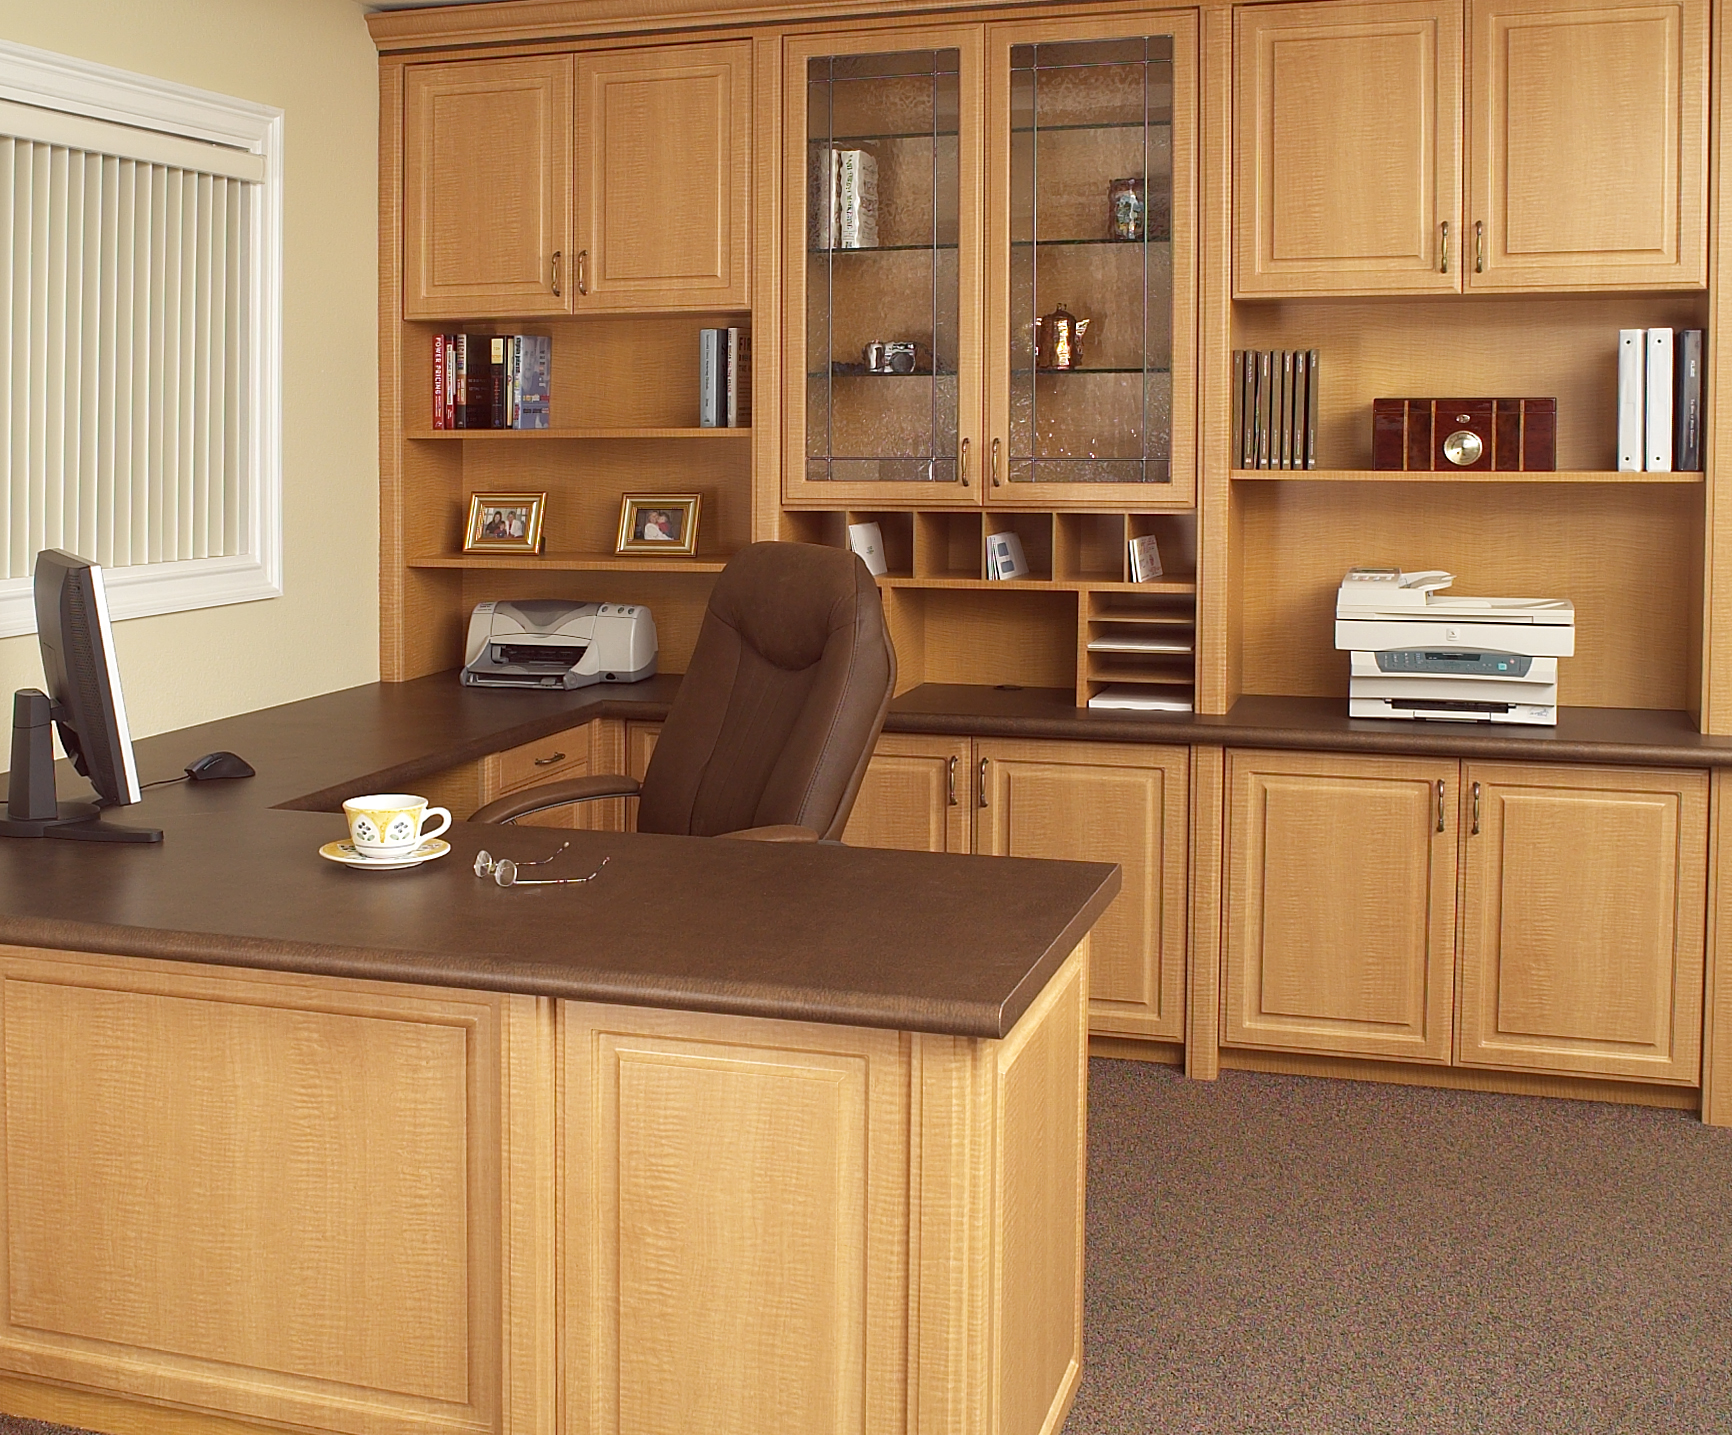 Knoxville Home Office Design Specialists Desks Shelves Cabinets Bins